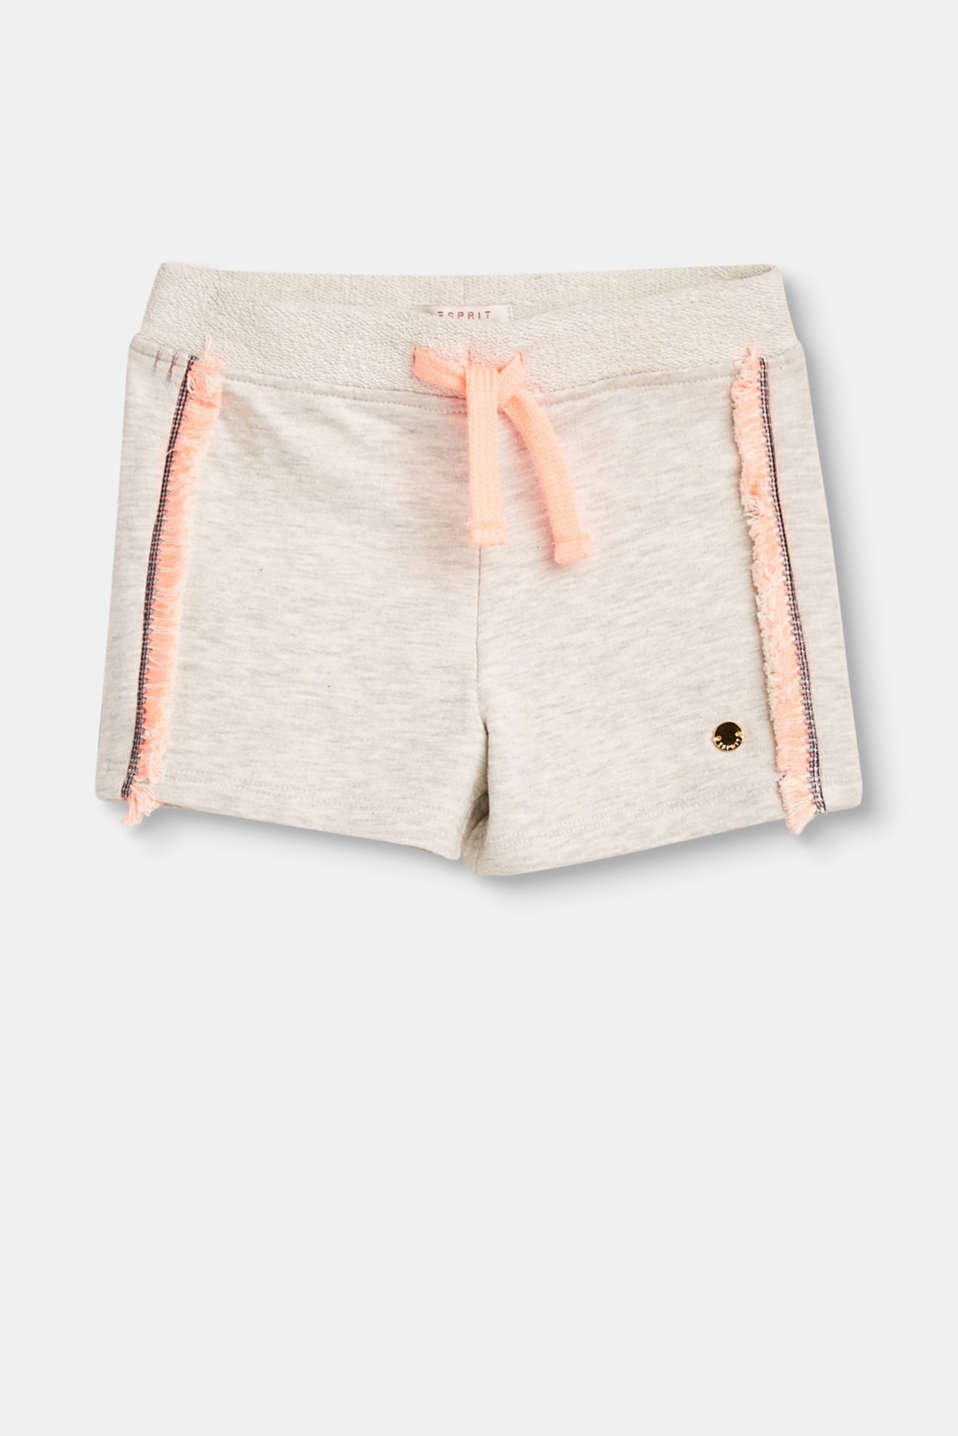 Esprit - Sweatshirt shorts, frayed at the sides